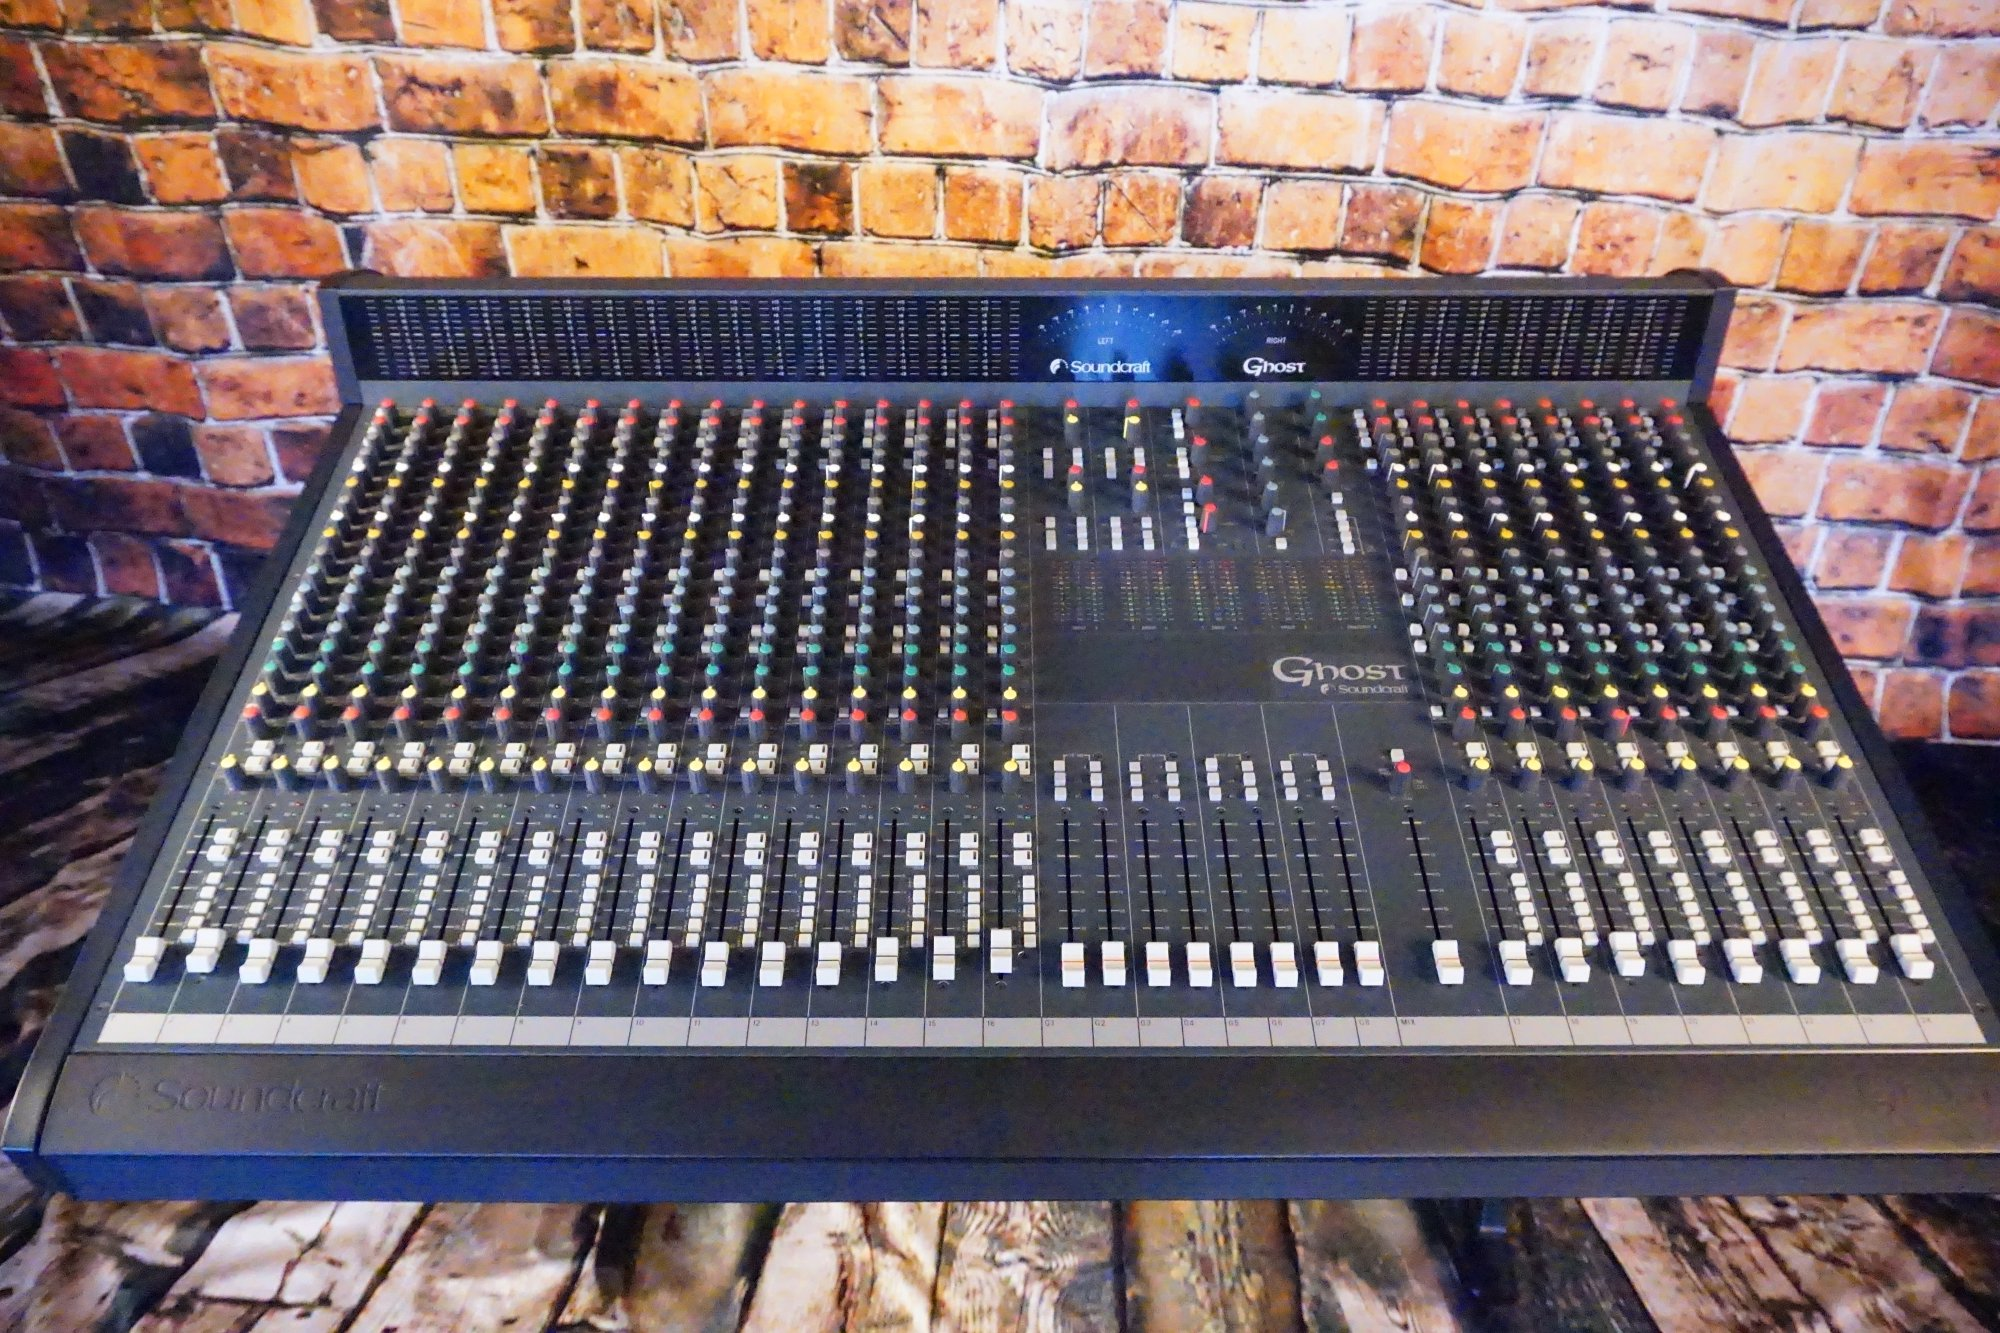 Used SoundCraft Ghost 24 Channel mixer